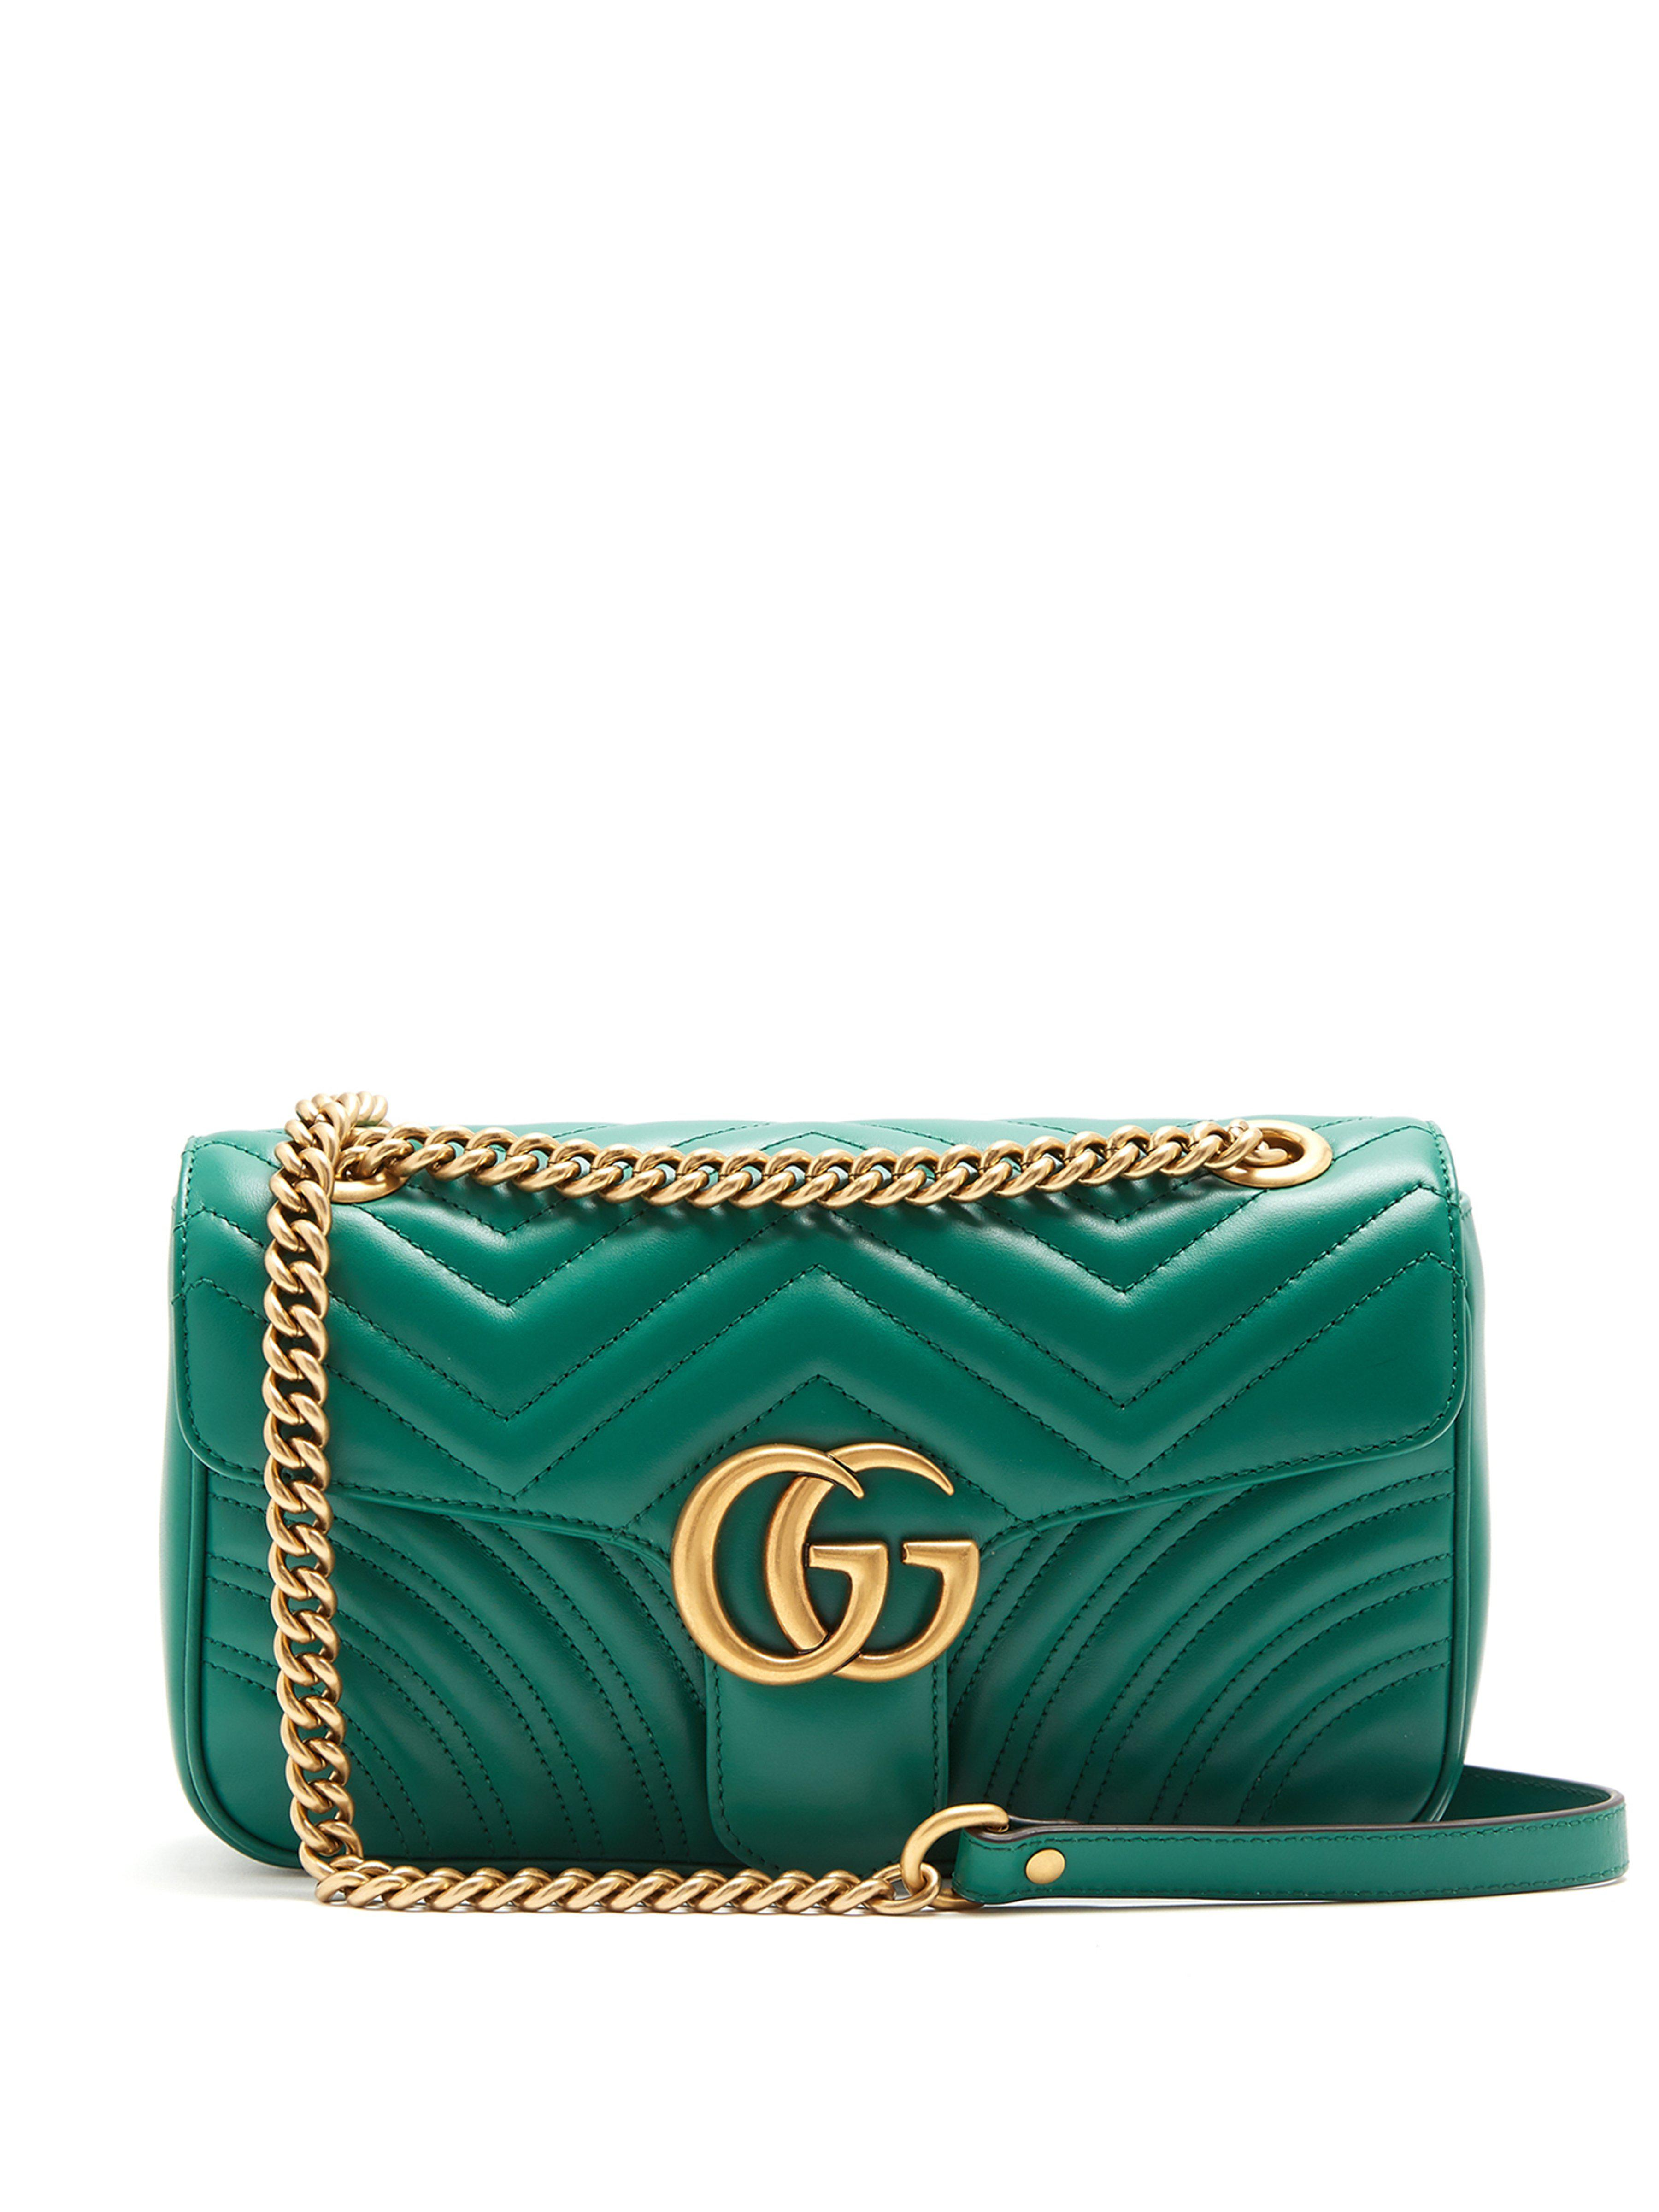 eadcd68ee7ce Gucci Small Marmont Matelasse Leather Shoulder Bag in Green - Save ...